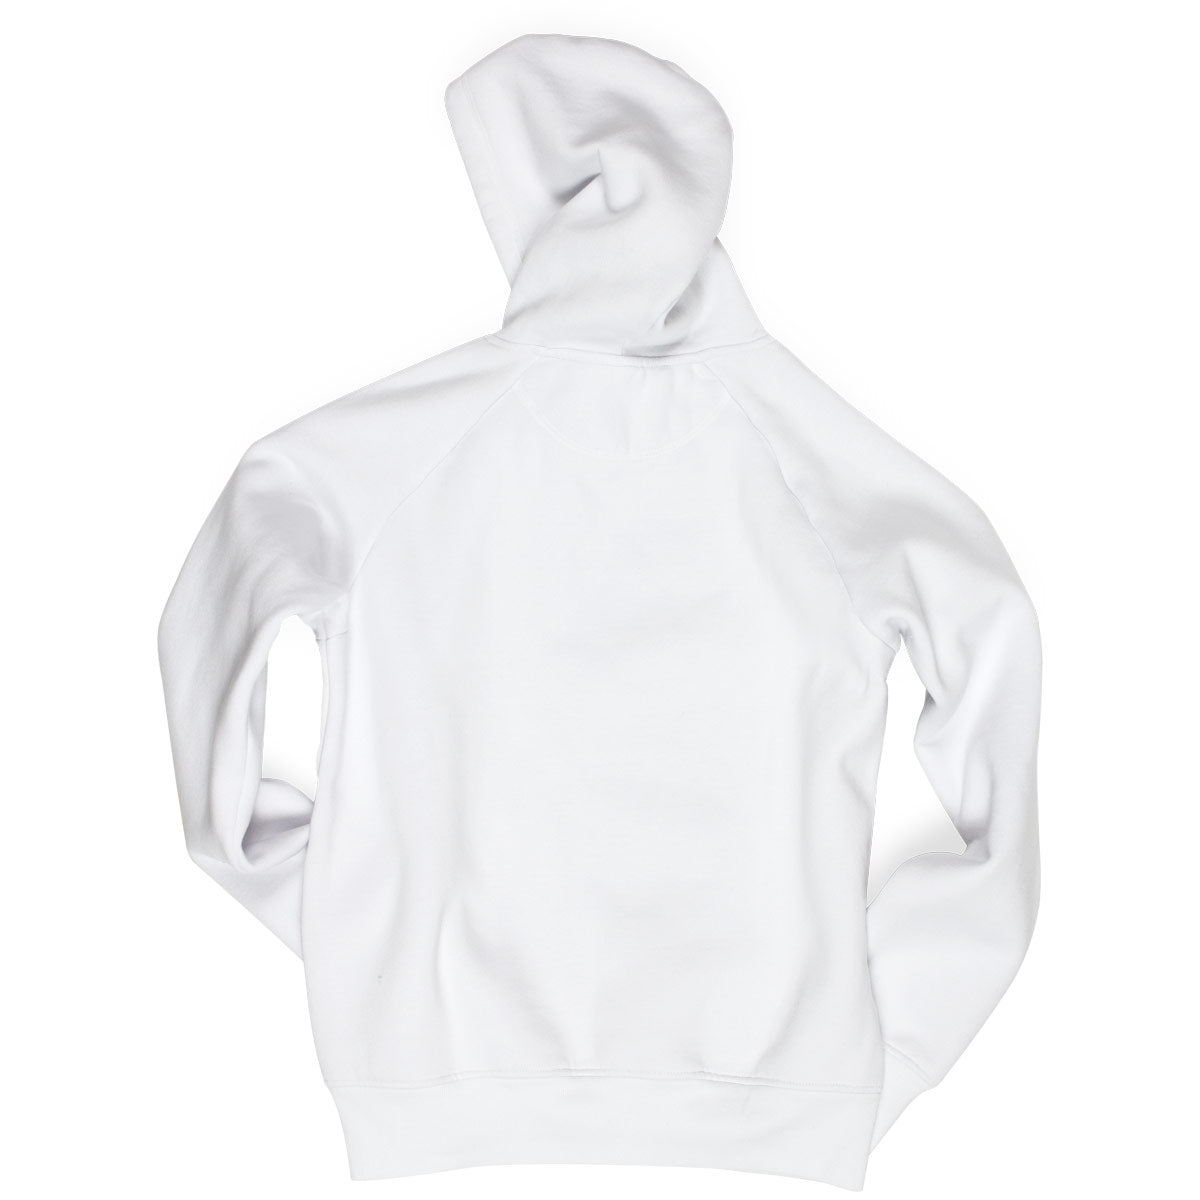 The Hip Hop Shop classic logo white hoodie rear